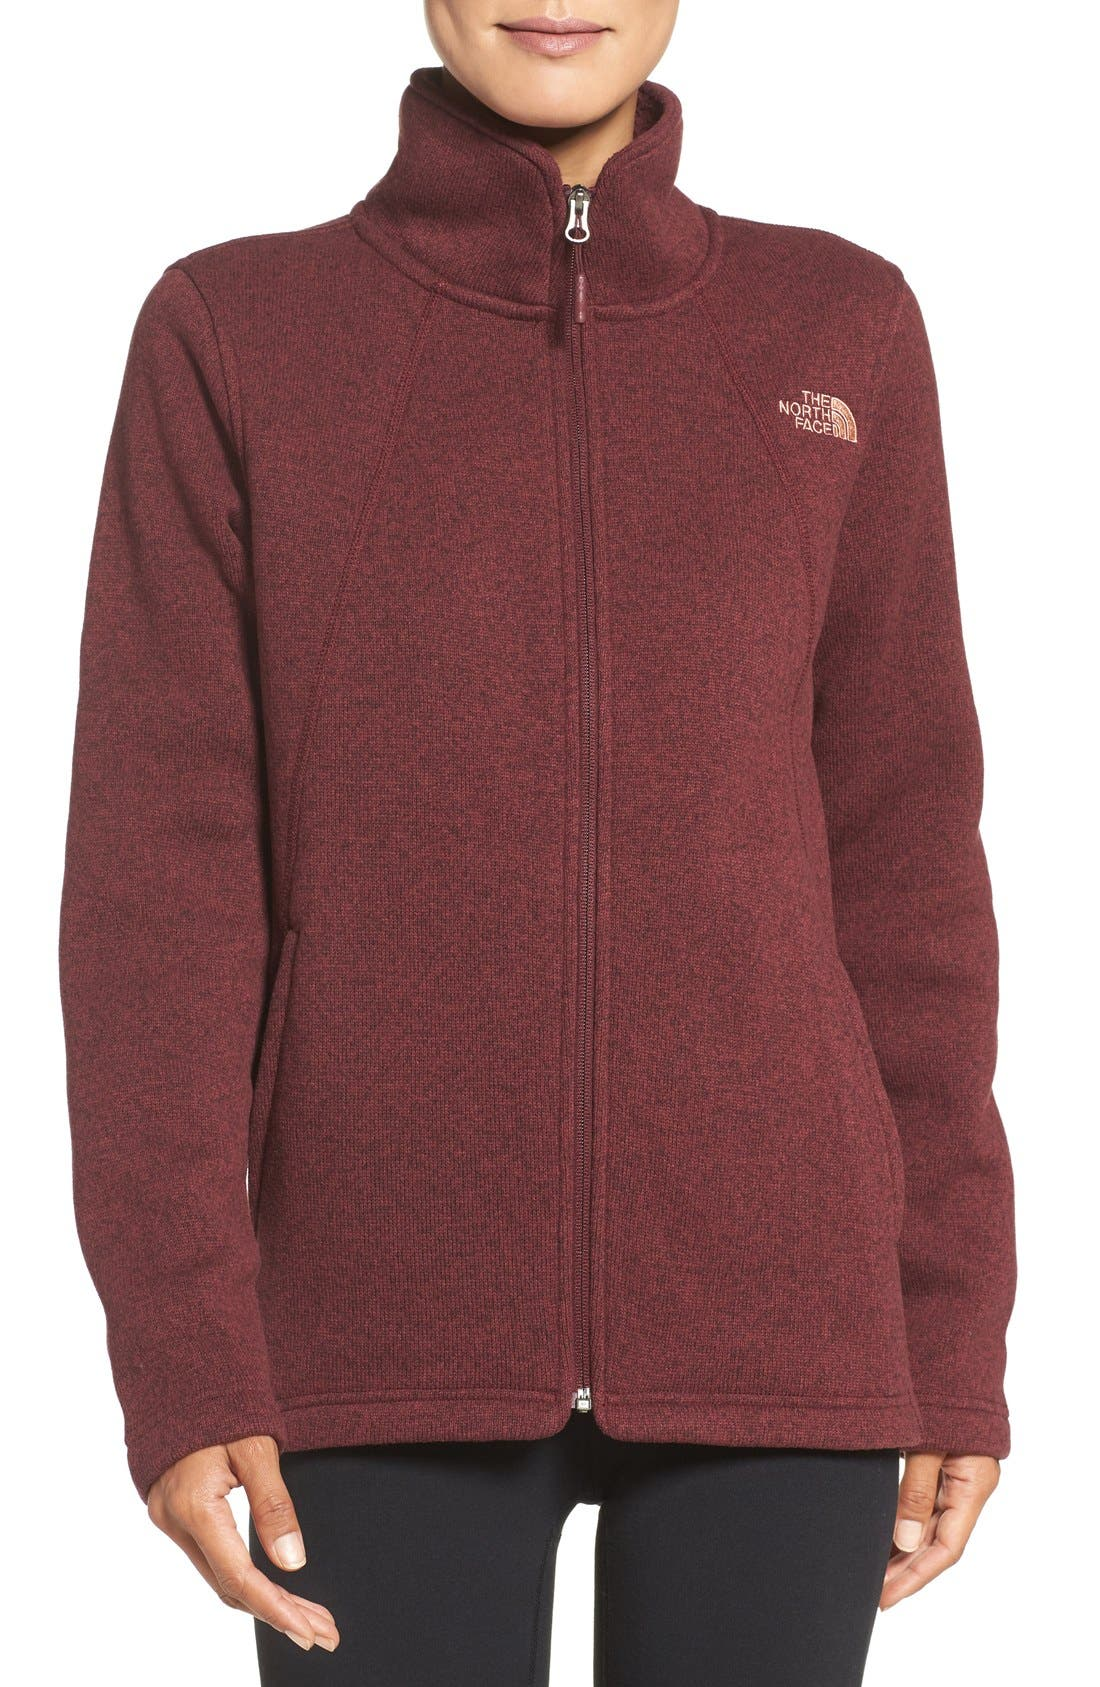 Main Image - The North Face Crescent Fleece Jacket